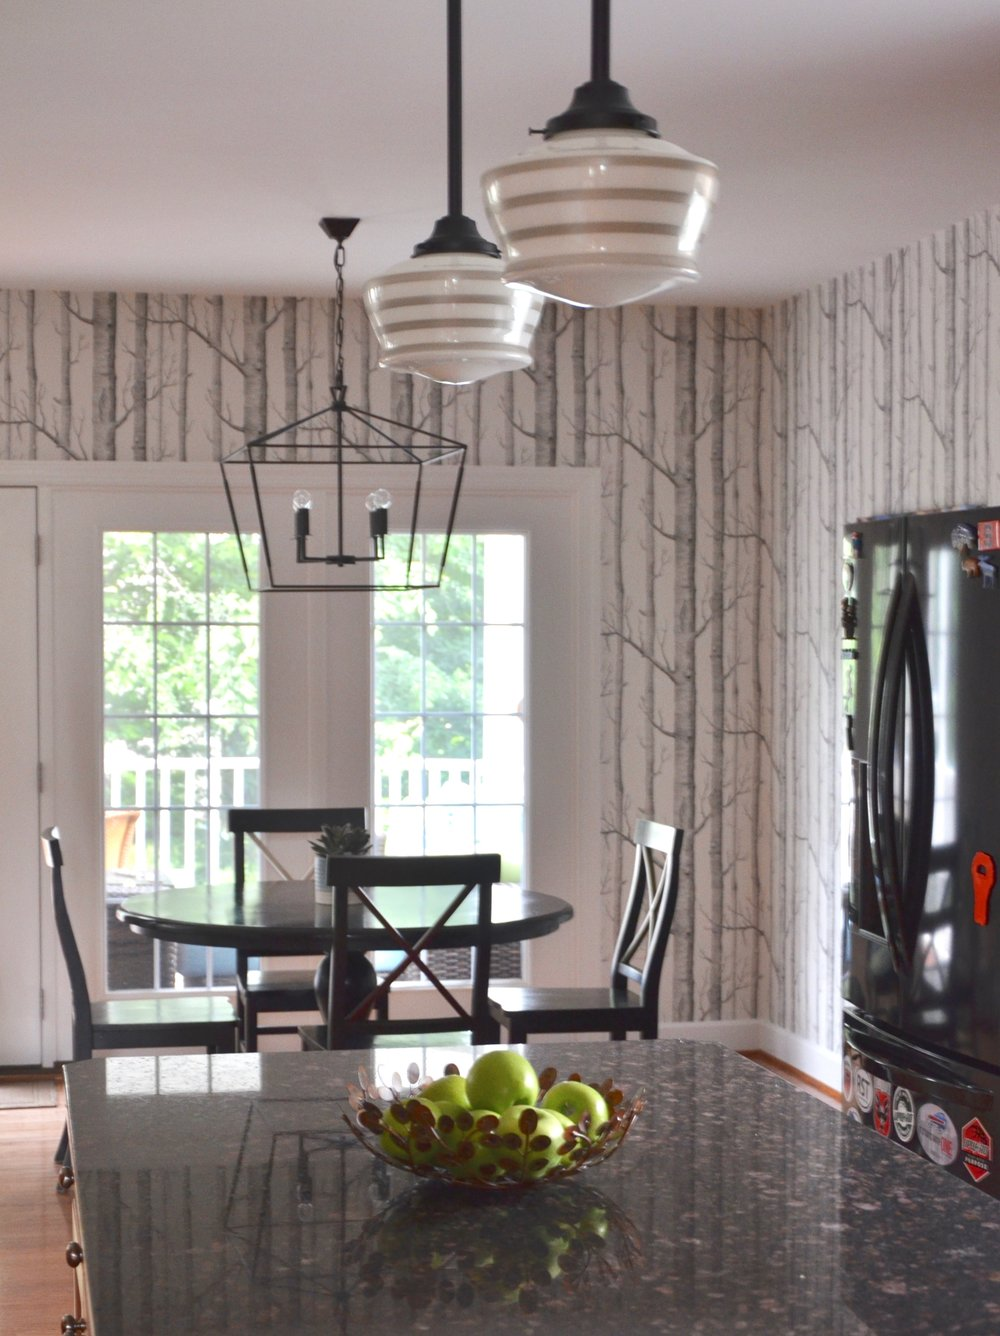 New light fixture over eat-in table, new pendant lighting over kitchen island, new wallpaper by Cole and Sons.